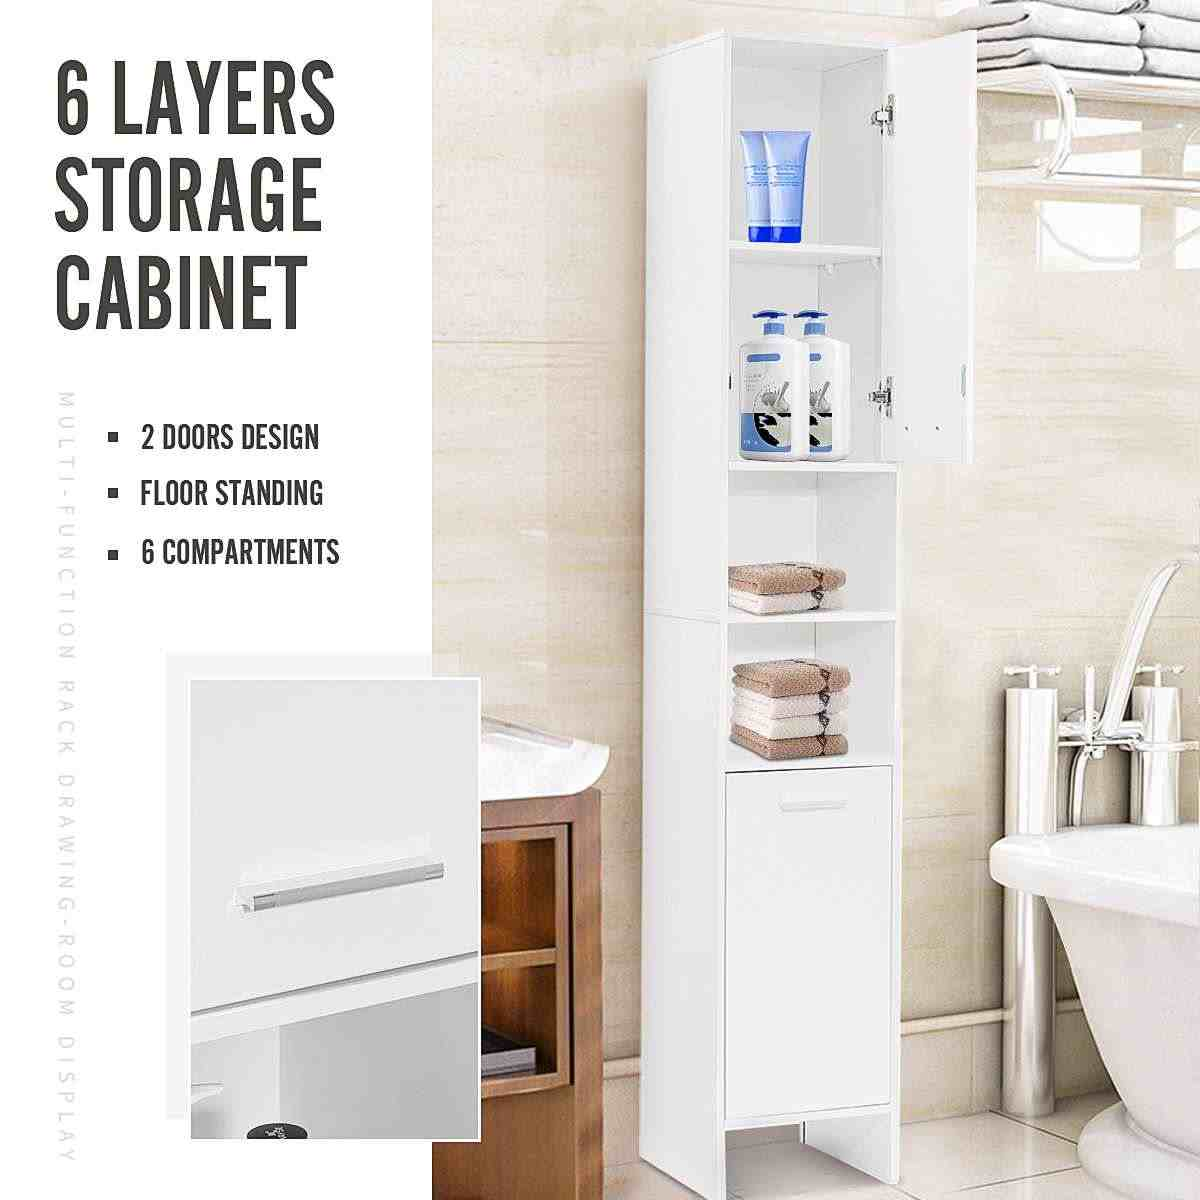 170x30x30cm Large 6 Layers Bathroom Cabinet Toilet Furniture Cupboard Shelf Storager Modern Style With Rack For Kitchen Aliexpress